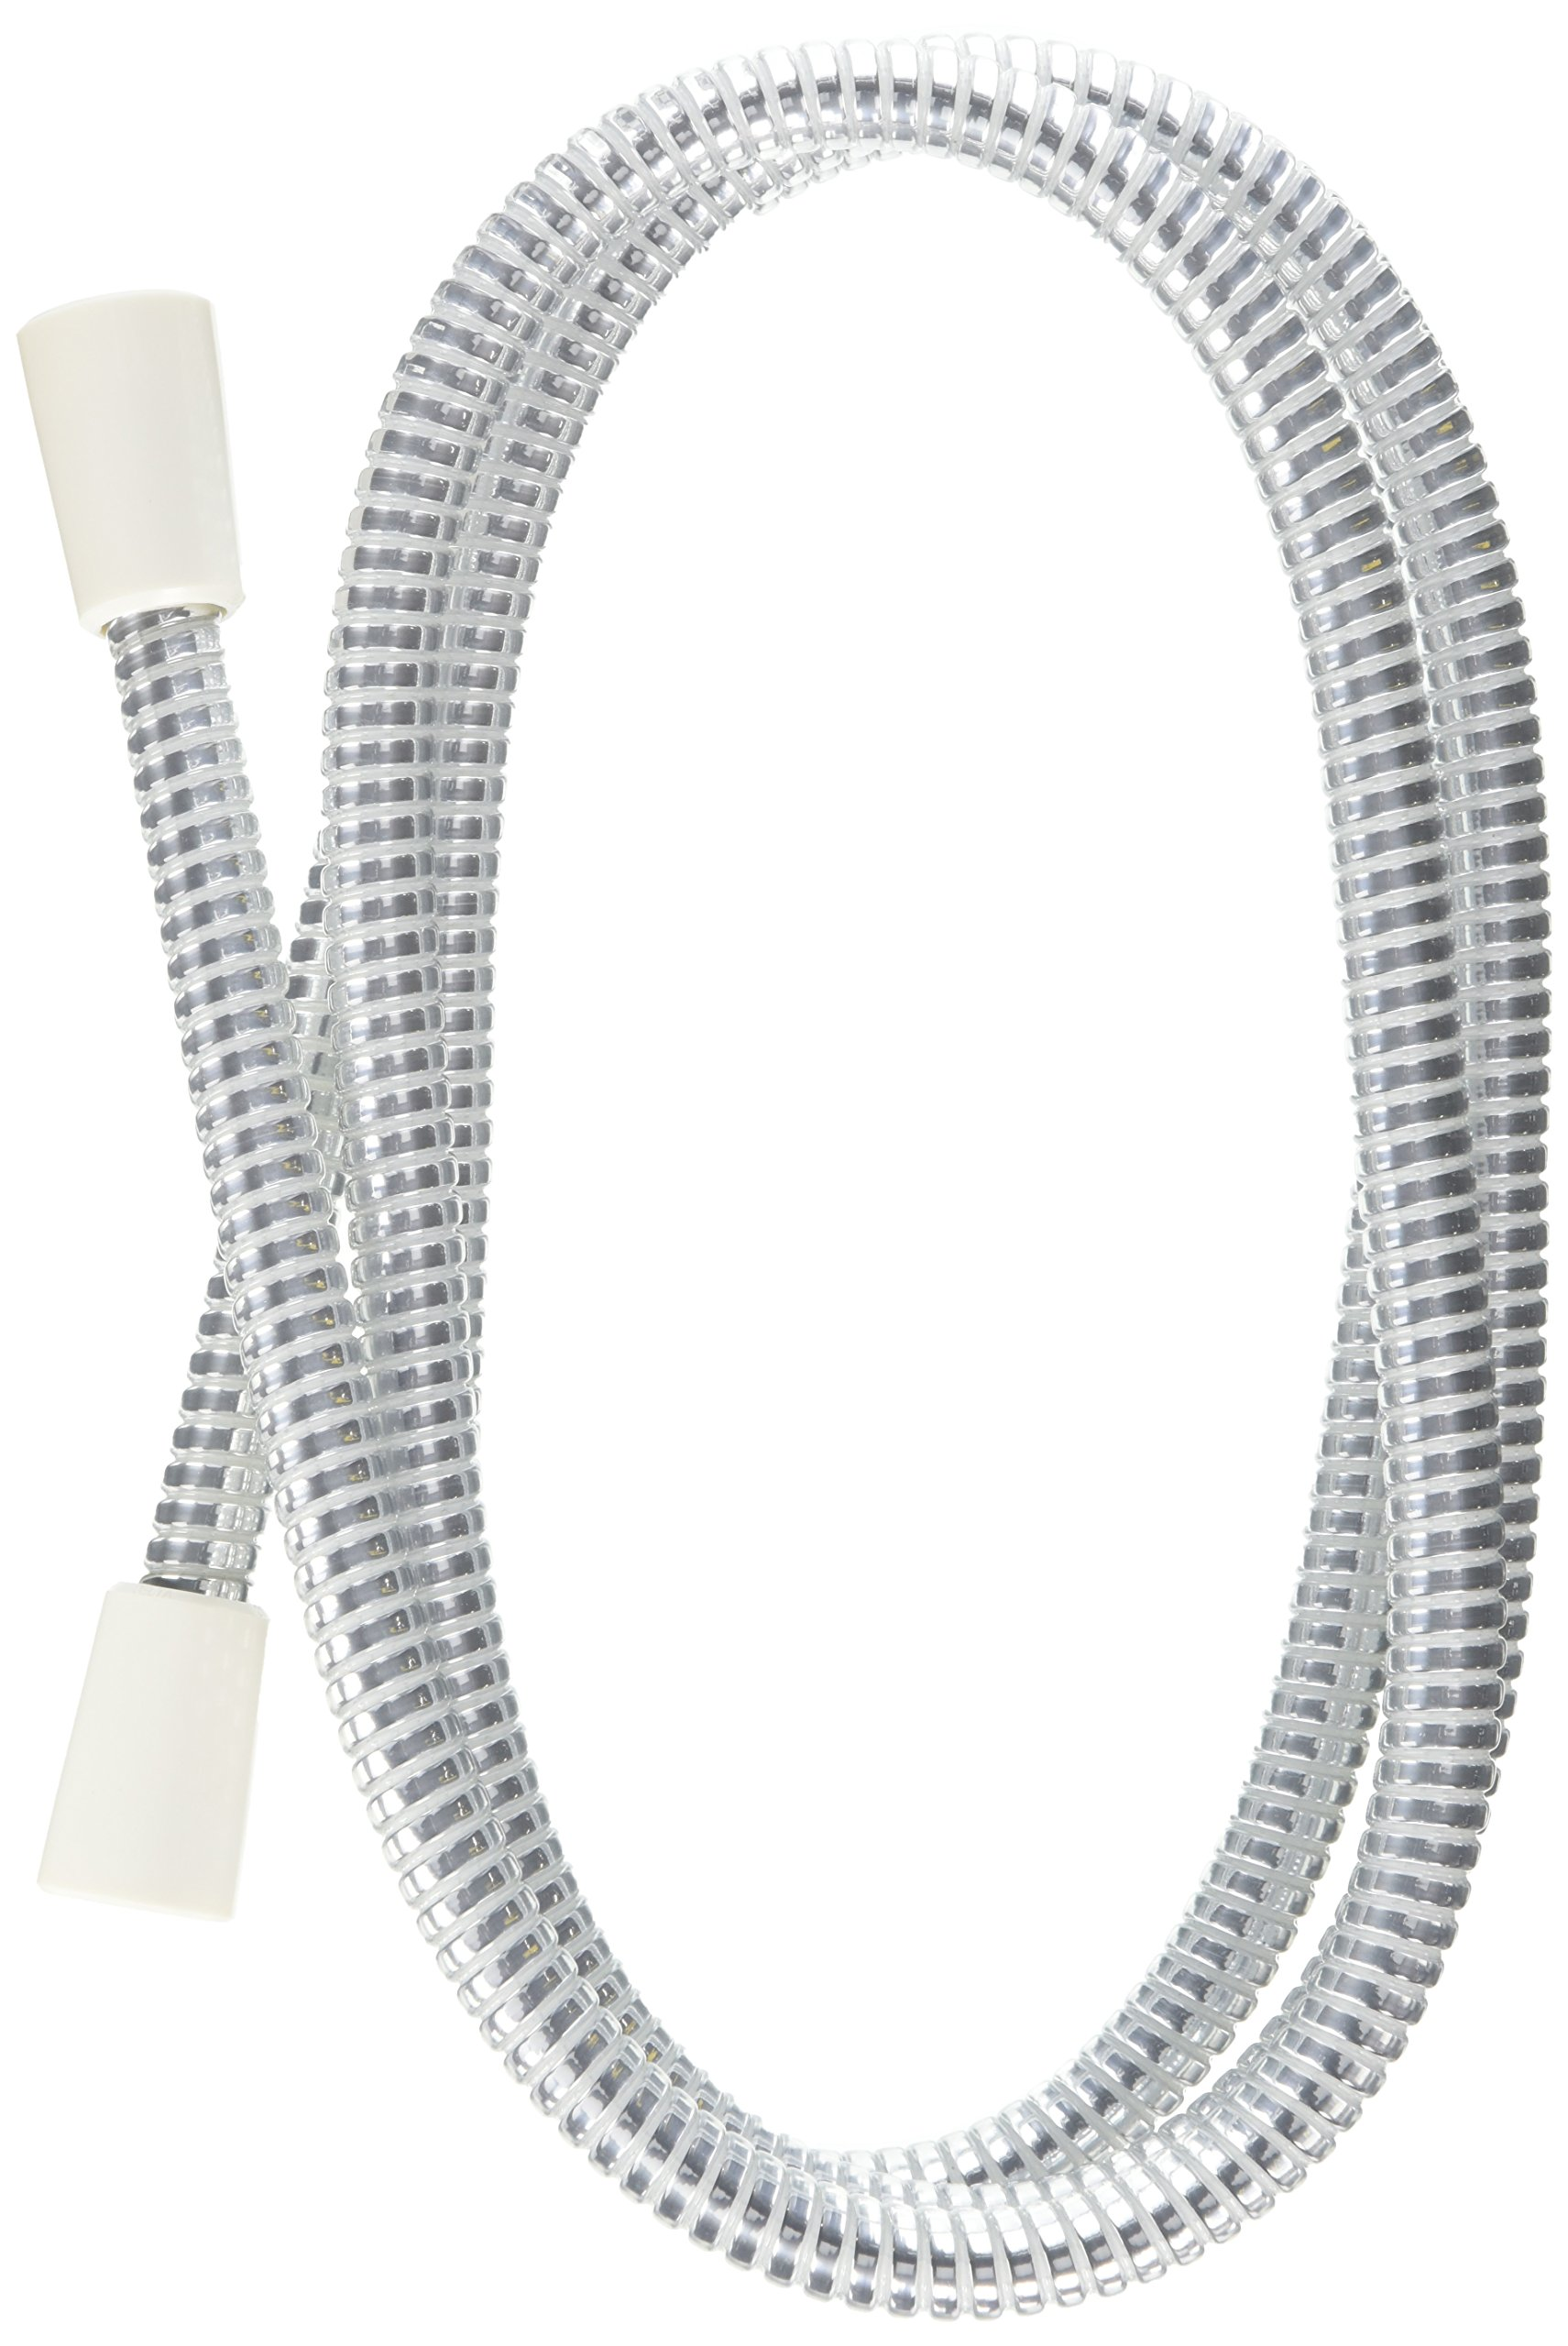 Delta Faucet 75006140 with 86-Inch UltraFlex Hose, Chrome/White